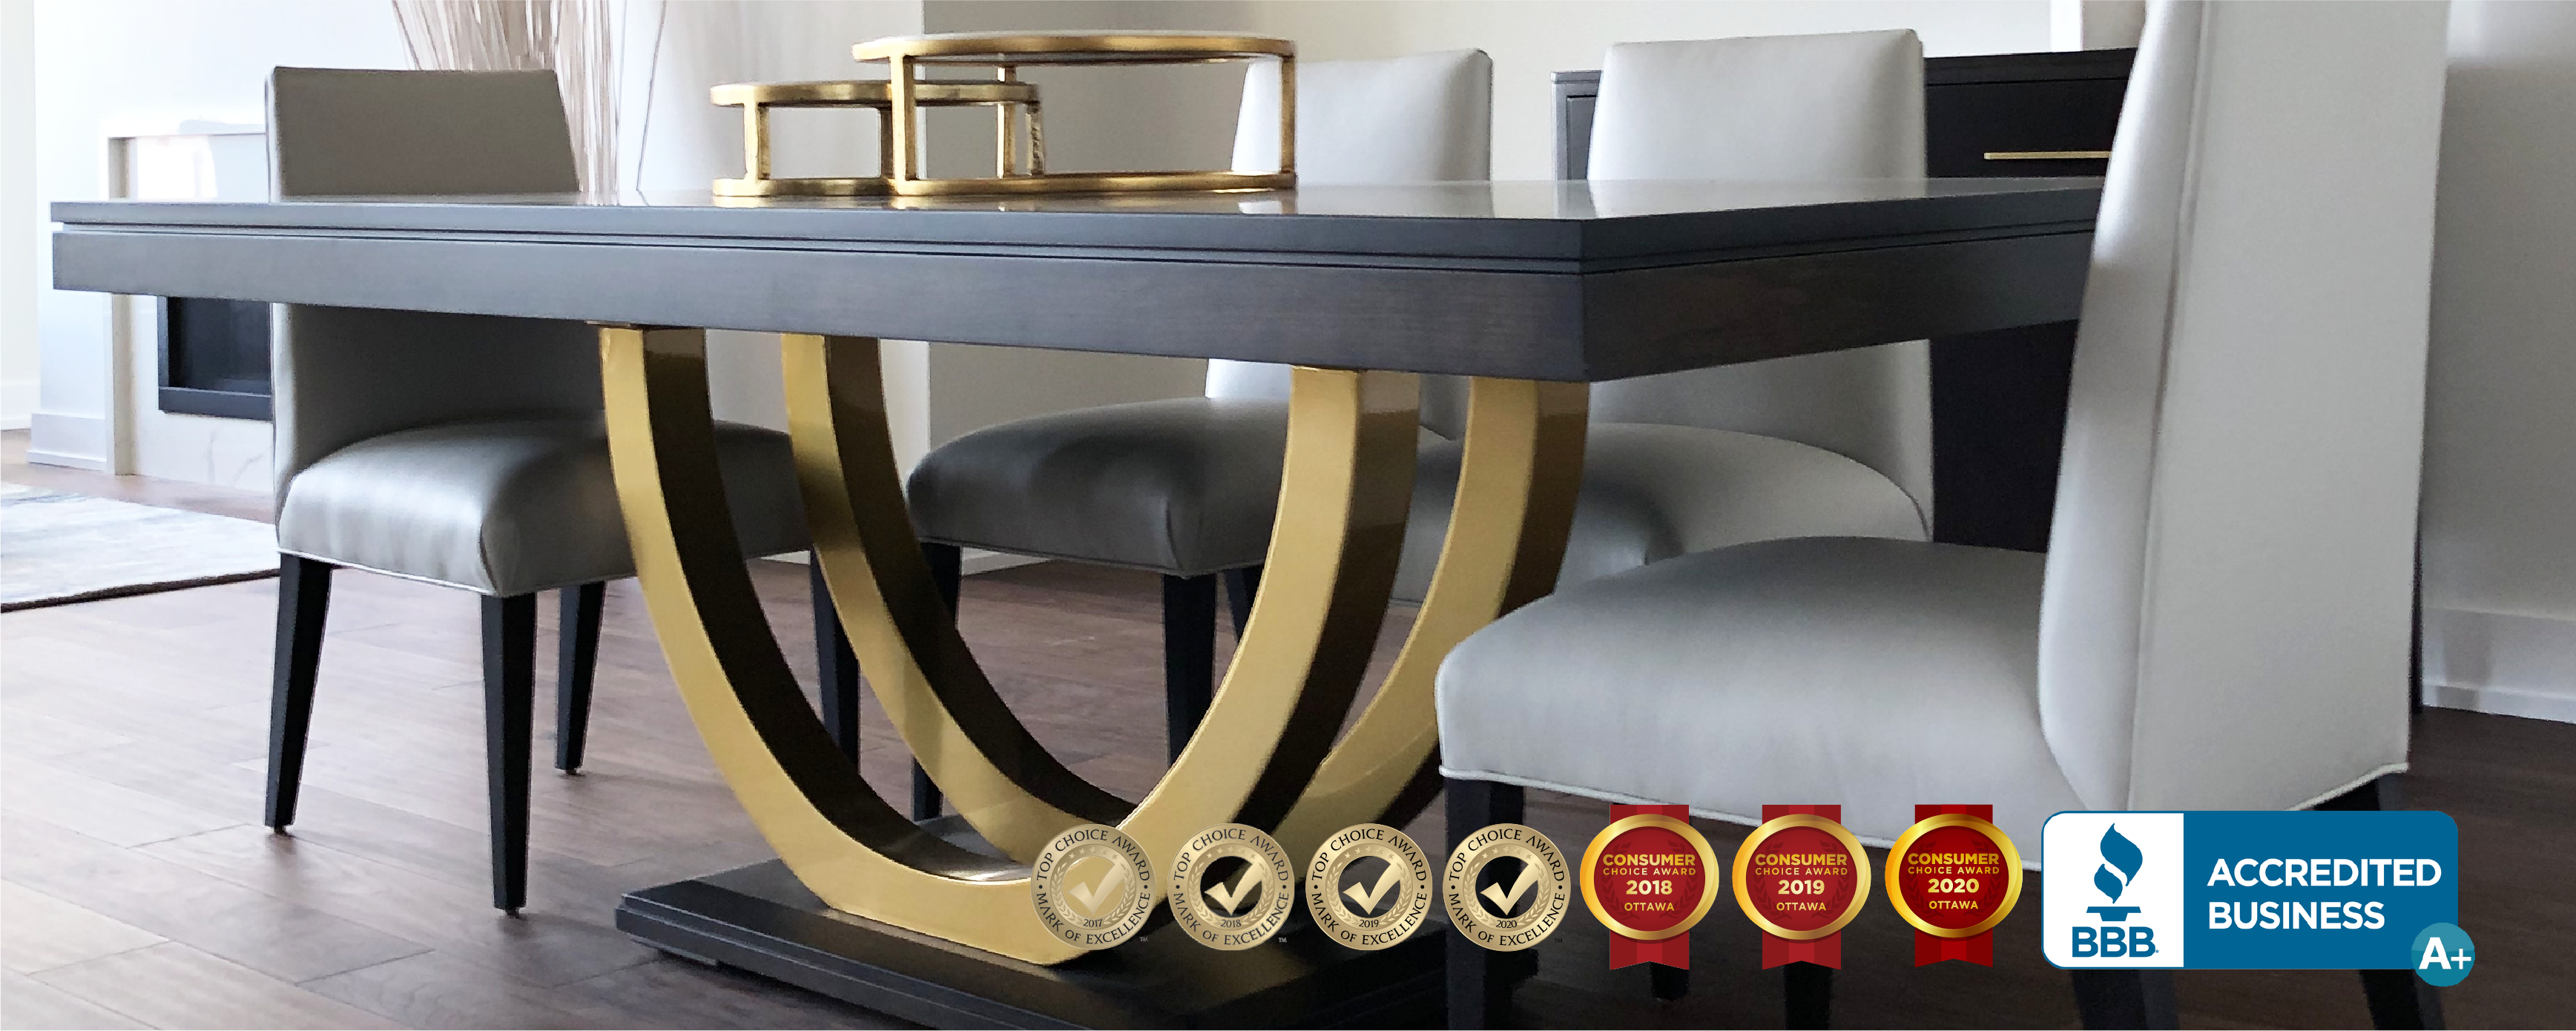 polanco_furniture_store_slider_2019-07